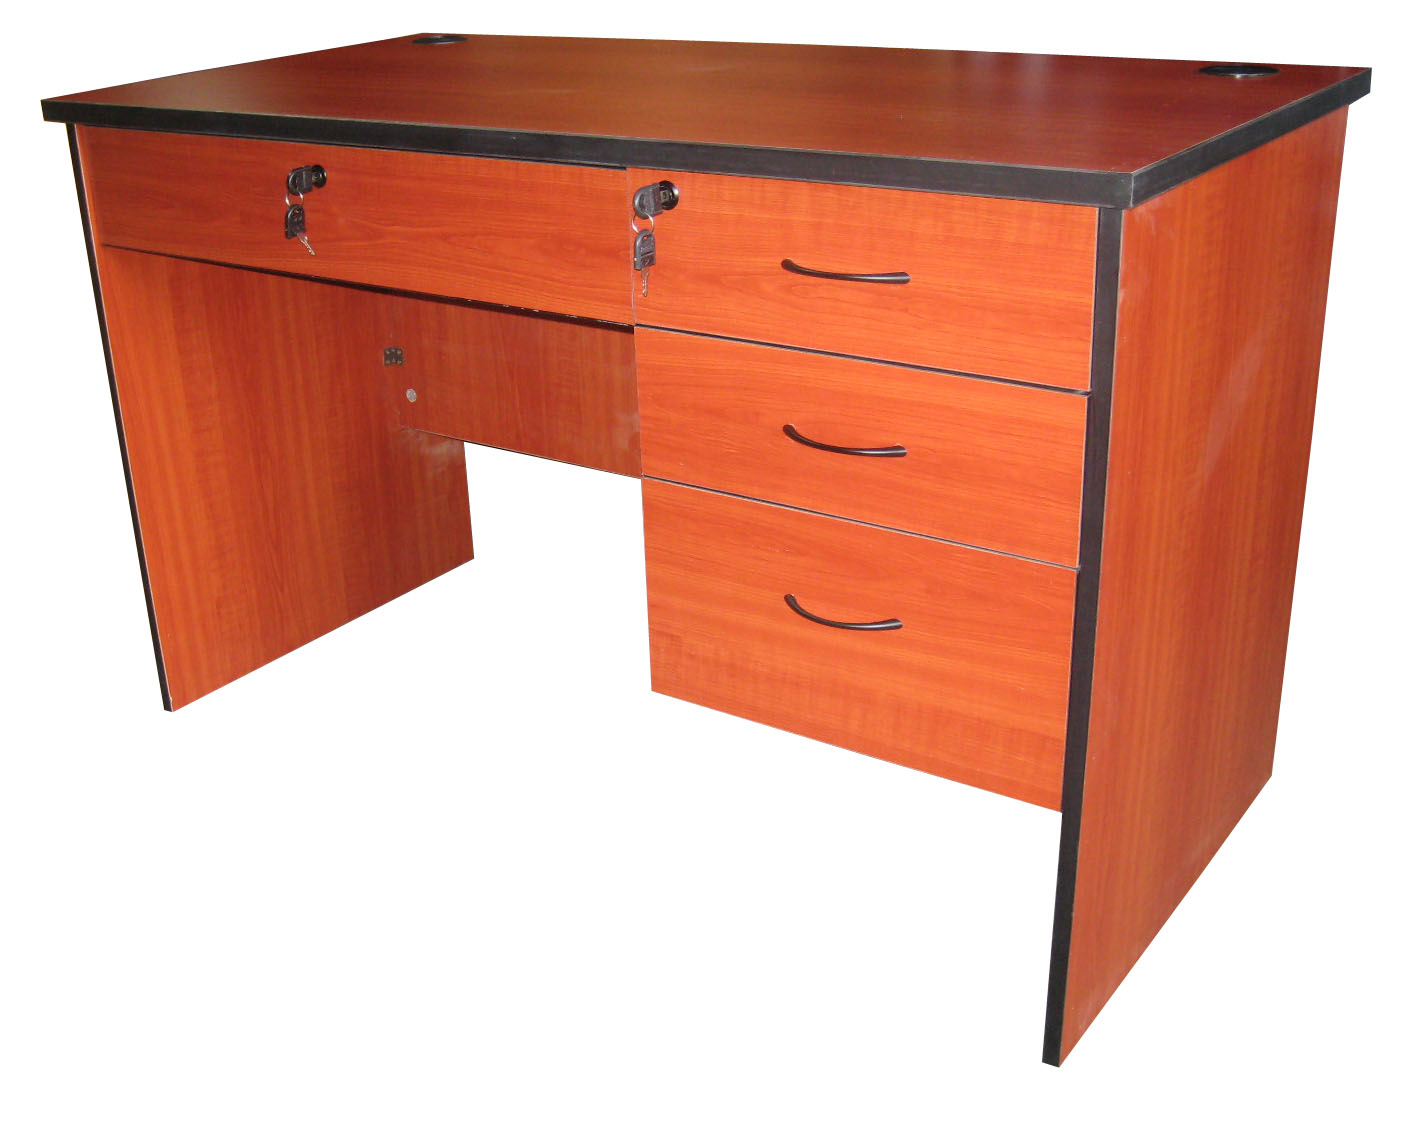 office table wood. SKU: HM-17 (HUNGARY). Soho HUNGARY Office Table Wood